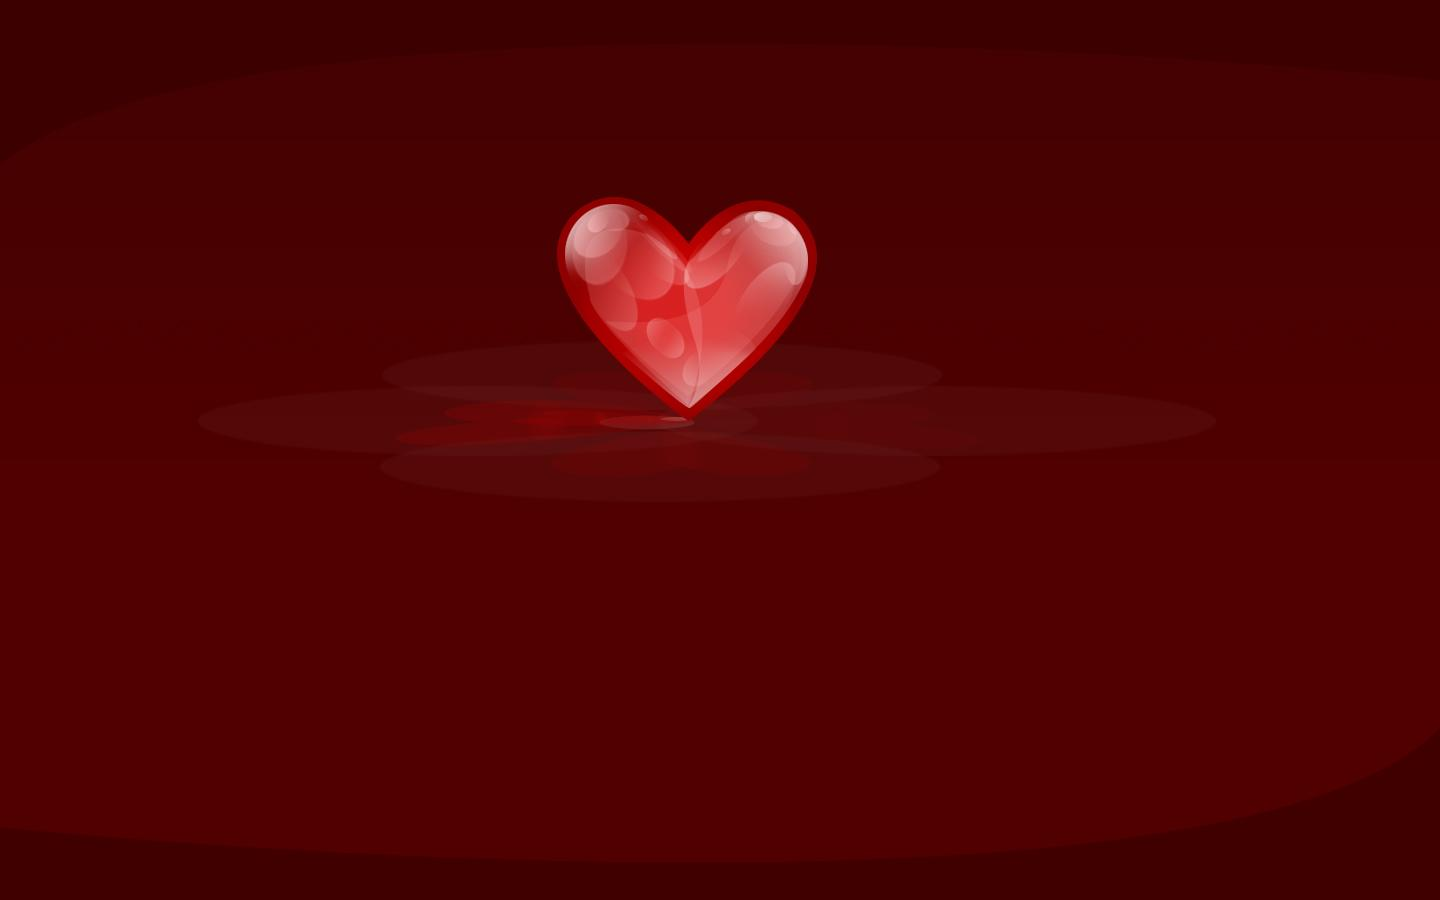 Valentines Heart wallpapers Valentines Heart stock photos 1440x900